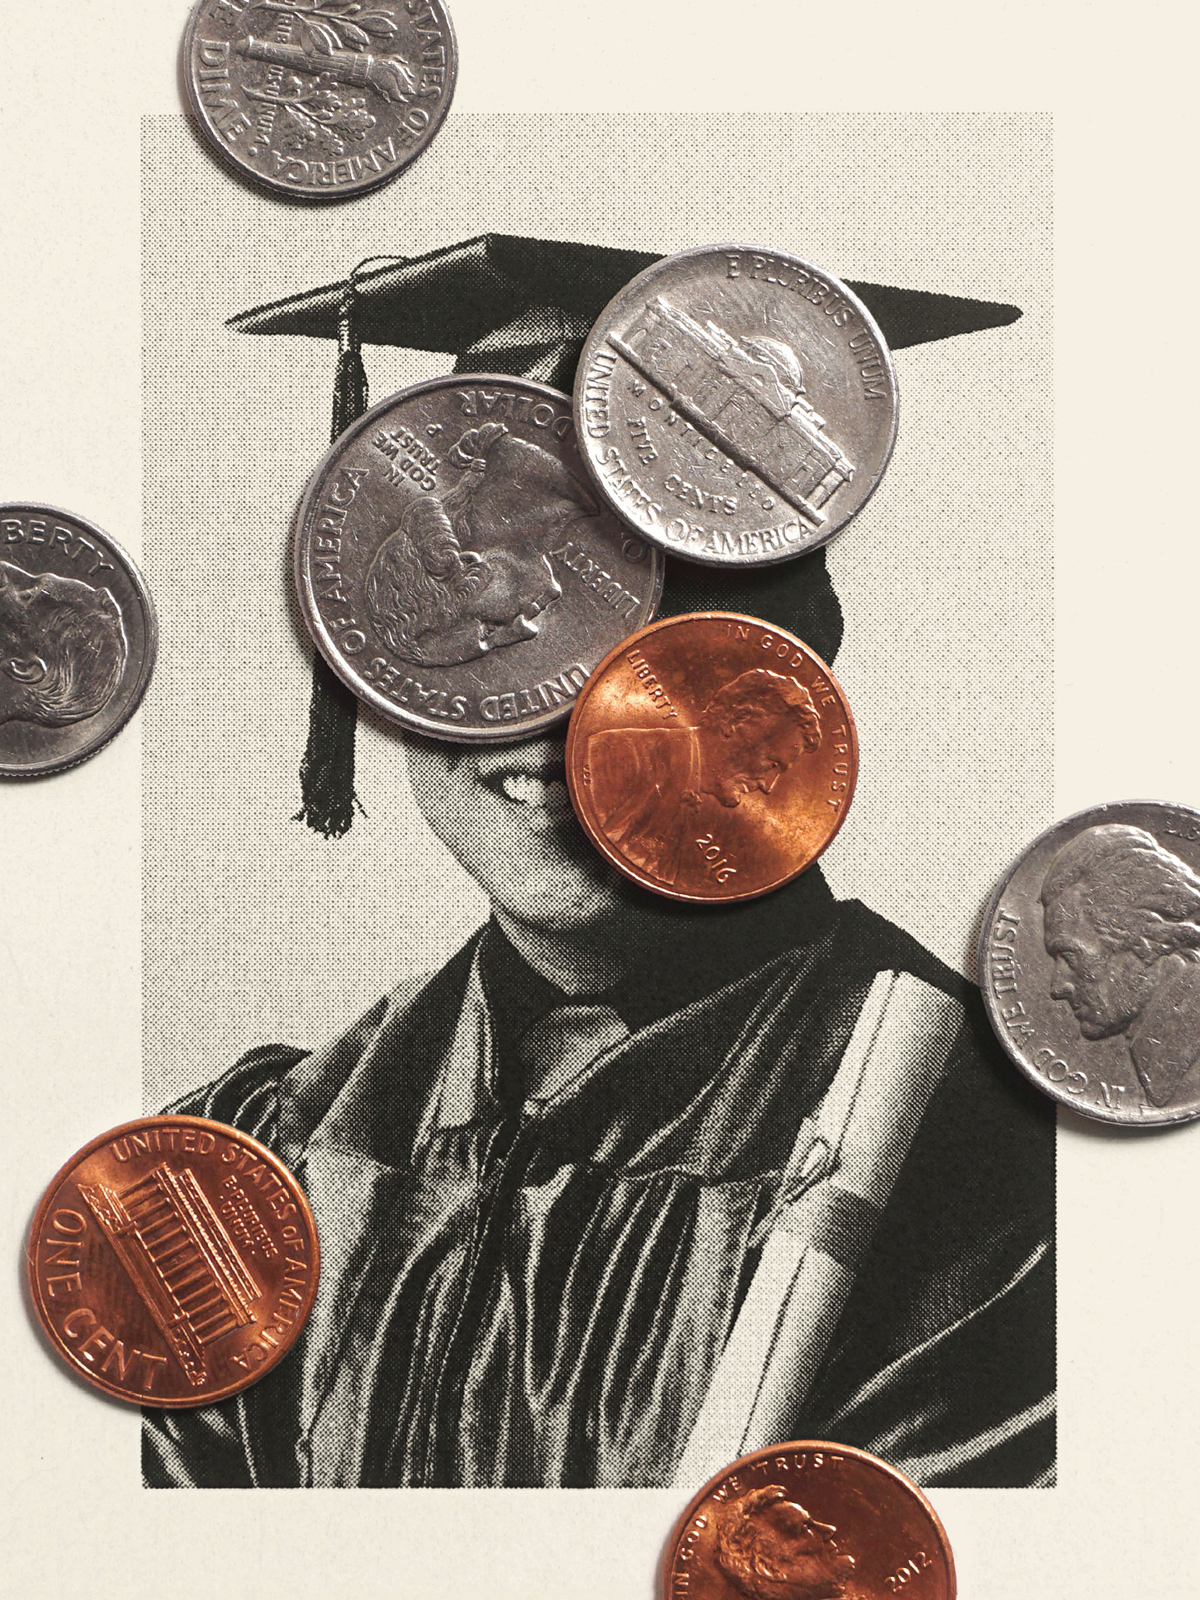 newrepublic.com - David Sessions - How Business Schools Fail Up